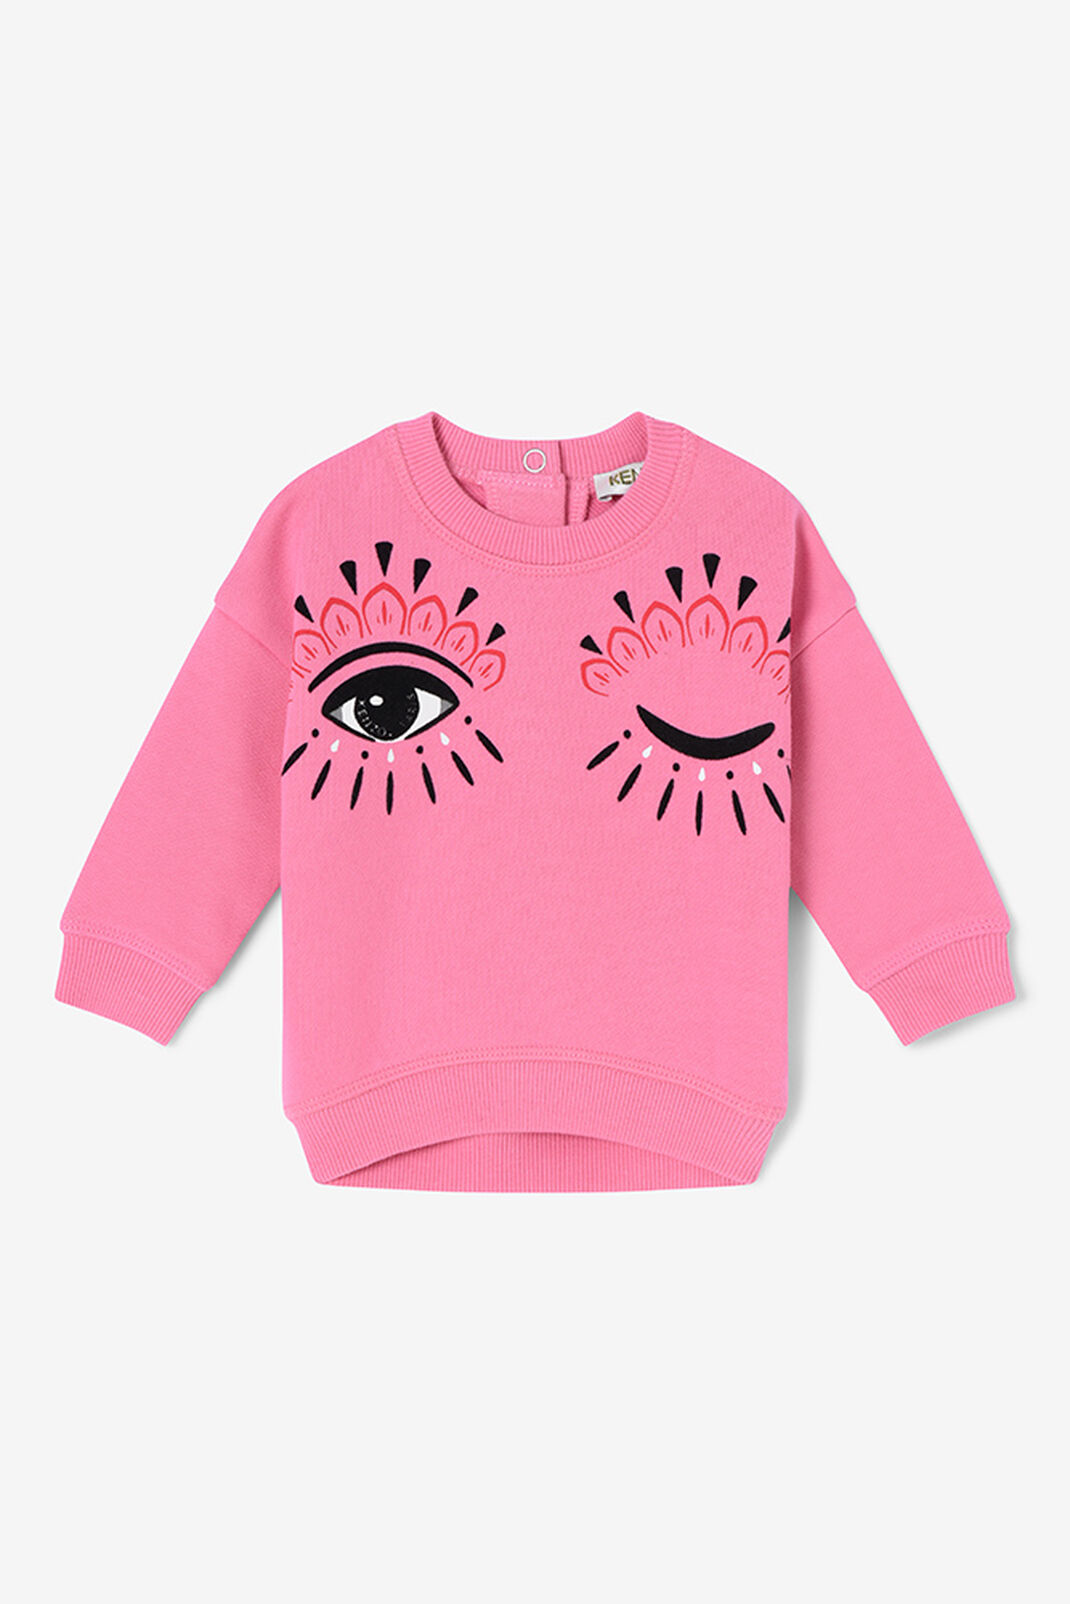 ROSE Winking Eyes Sweatshirt for women KENZO